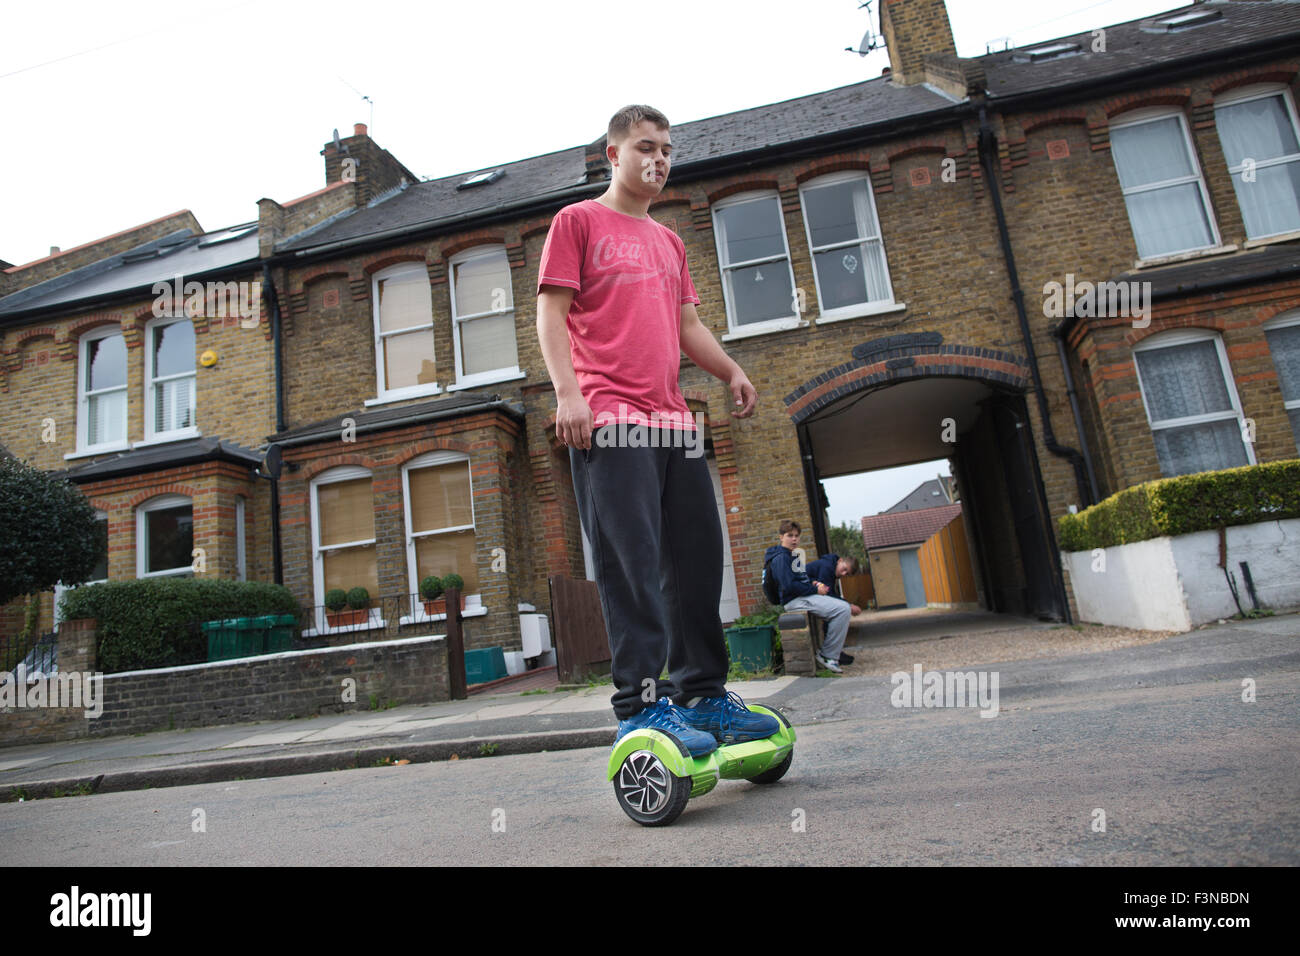 'Hoverboard' scooters being ridden by teenage boys, London, England, UK - Stock Image